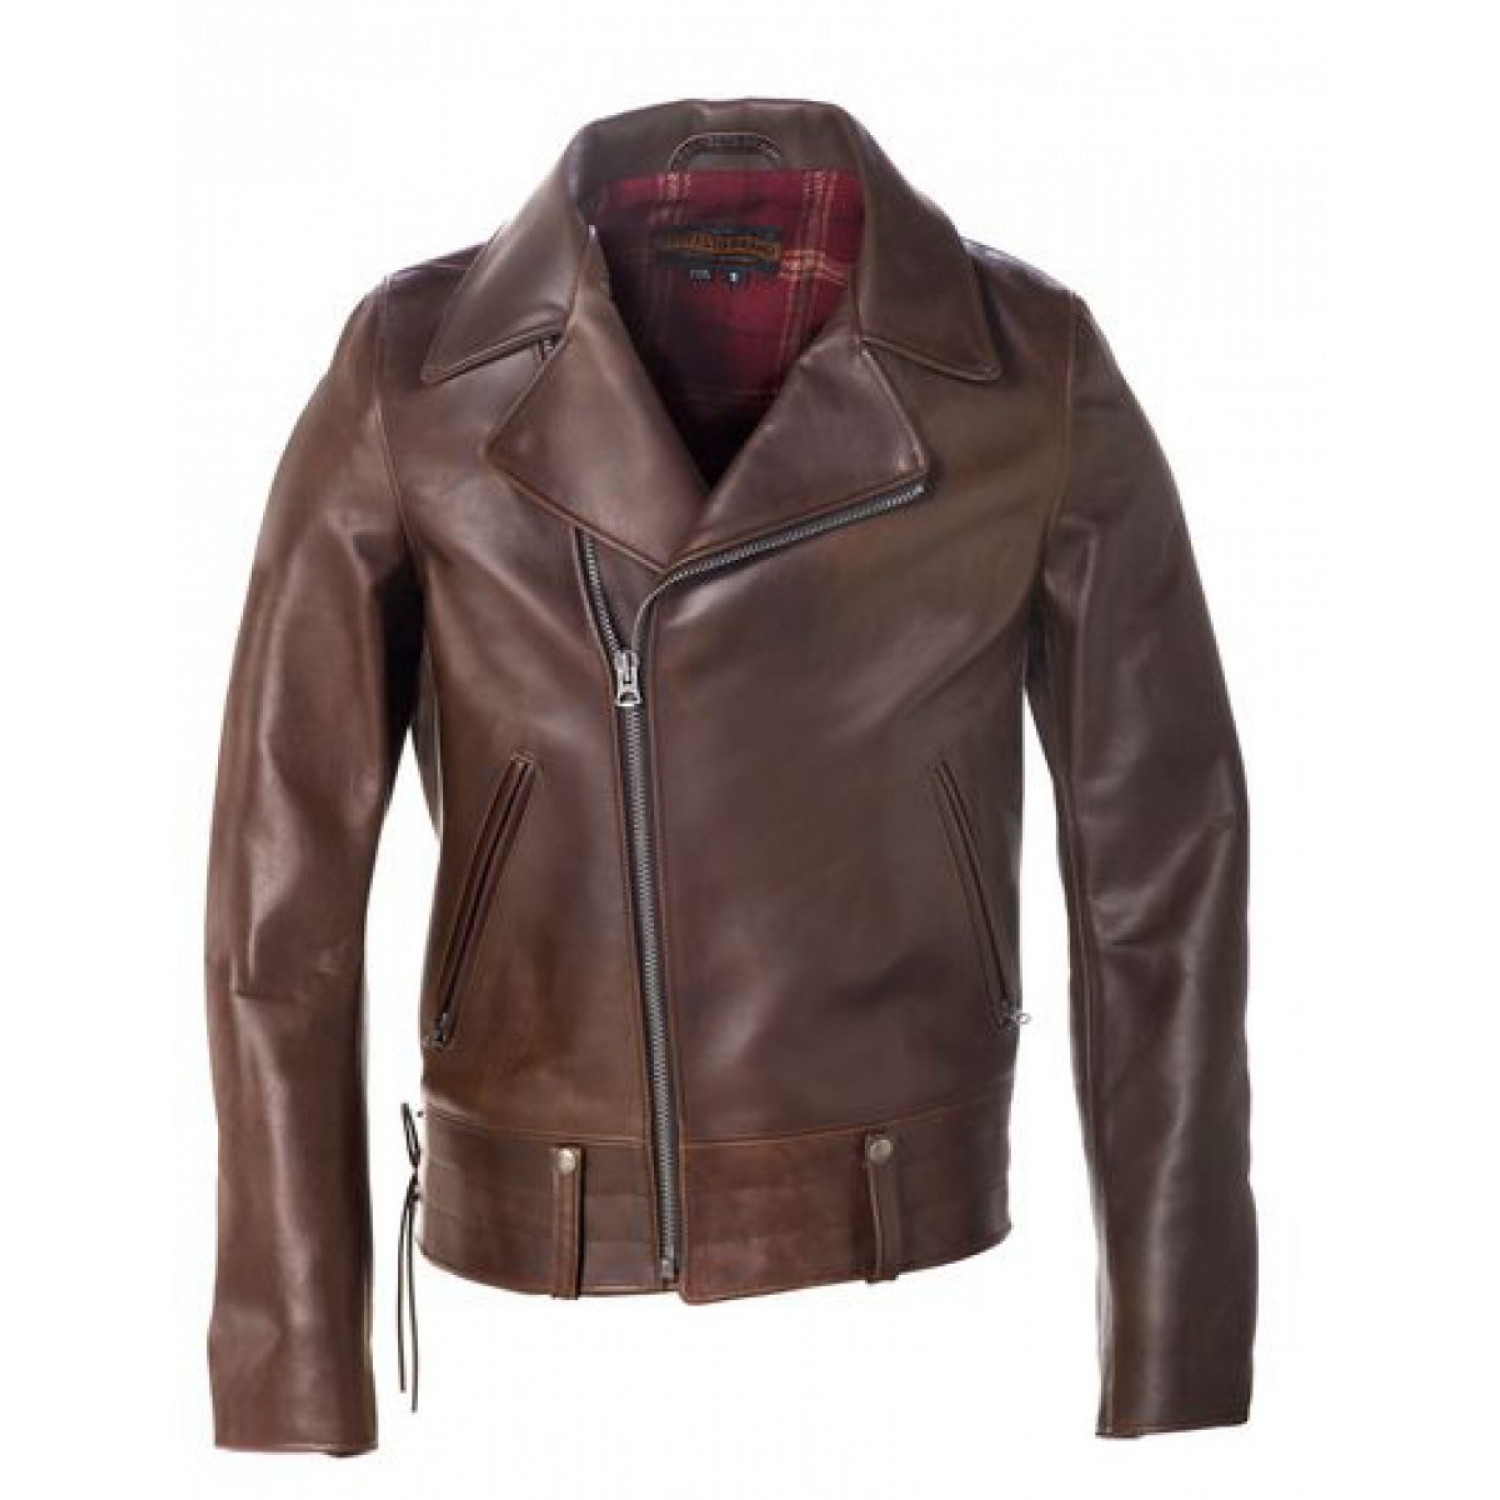 Куртка кожаная SCHOTT косуха Perfecto California Highway Patrol Jacket P6521 BRN